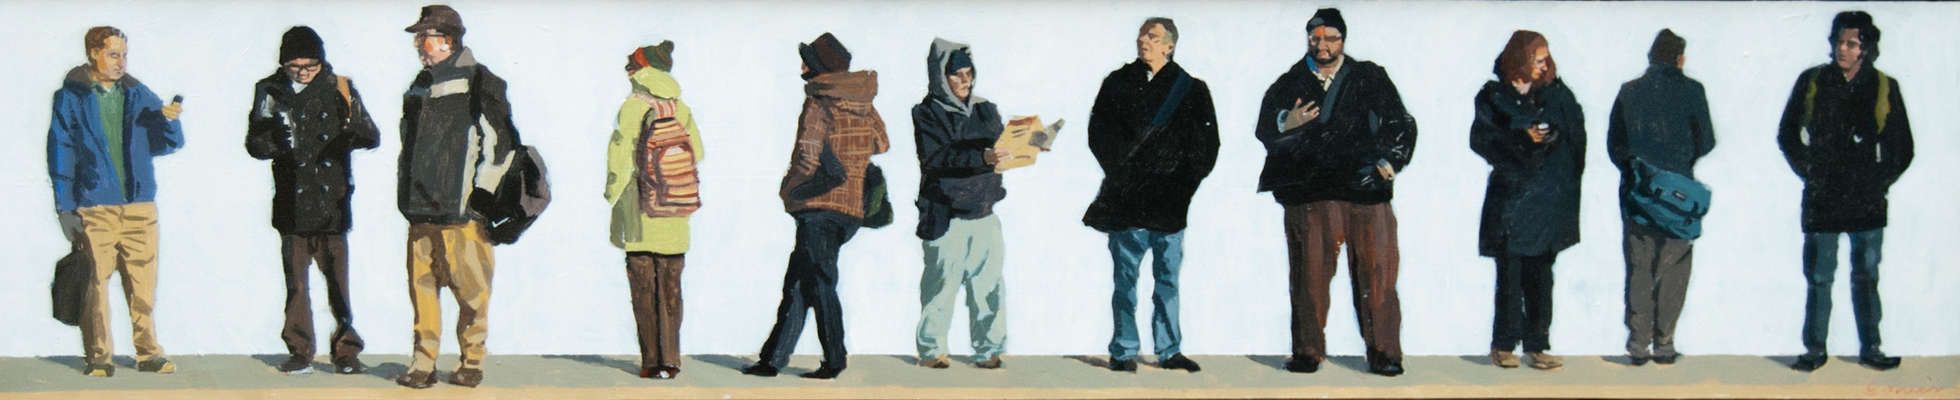 John Bonner Commuters Acrylic on cradled panel